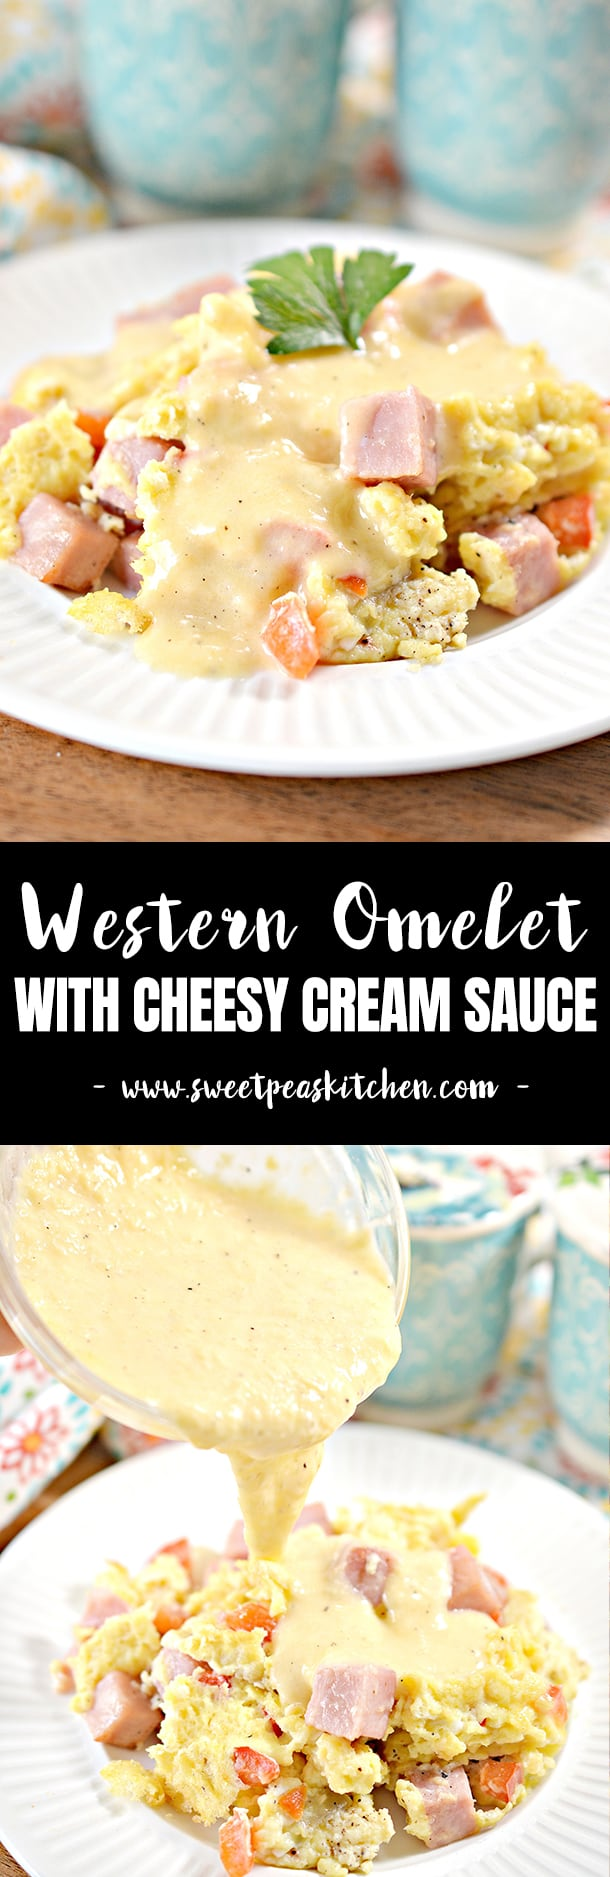 Western Omelet Egg Scramble with Cheese Sauce